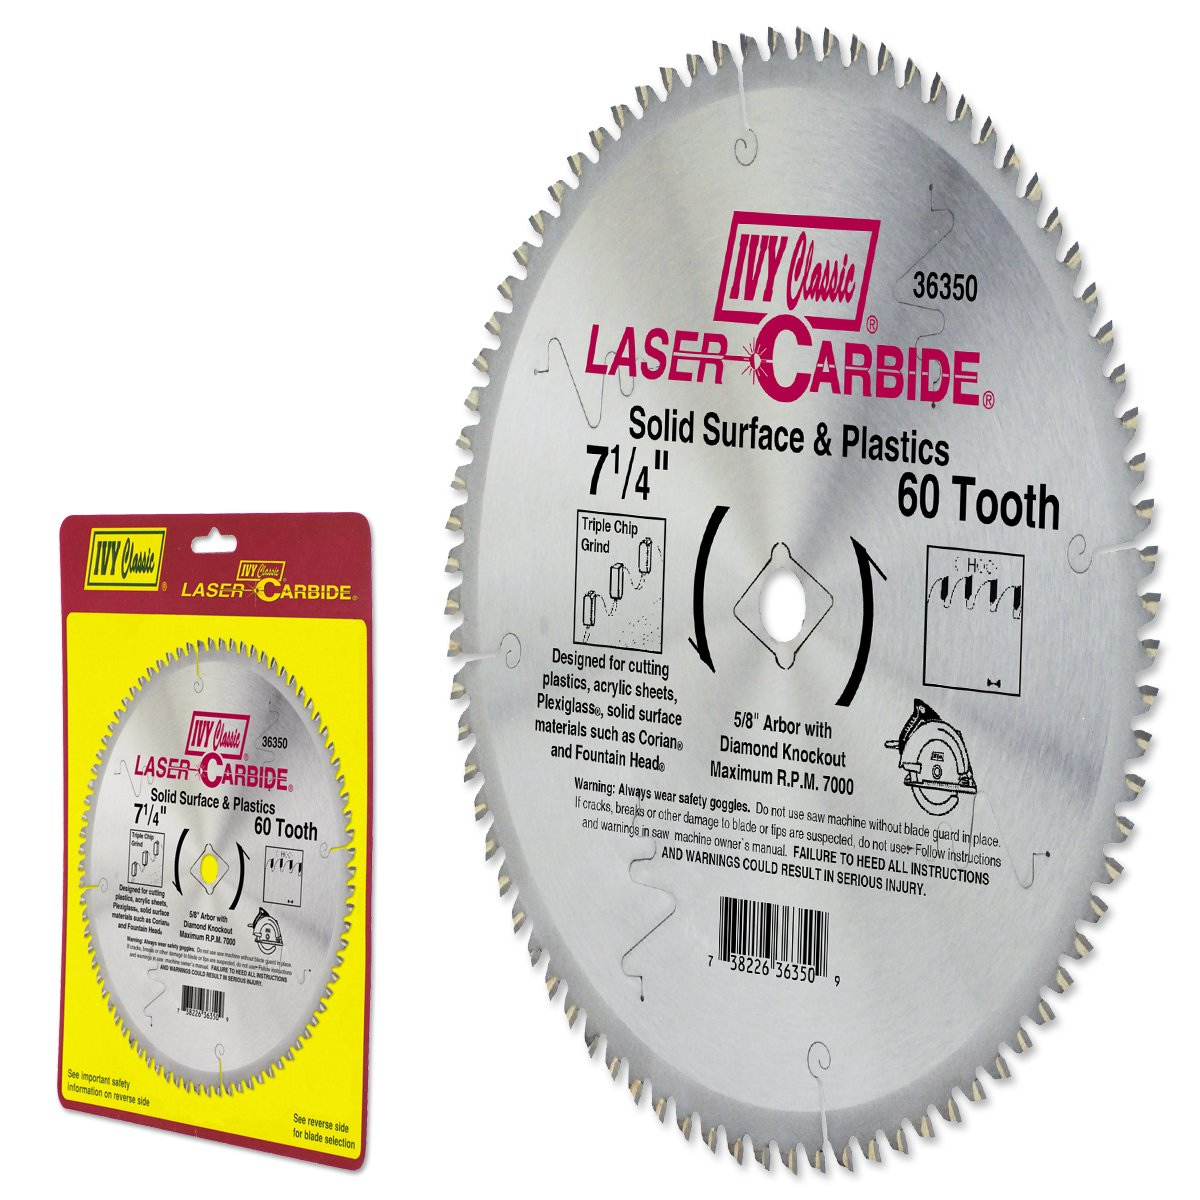 Ivy Classic 36350 Laser Carbide 7 1 4 Inch 60 Tooth Solid